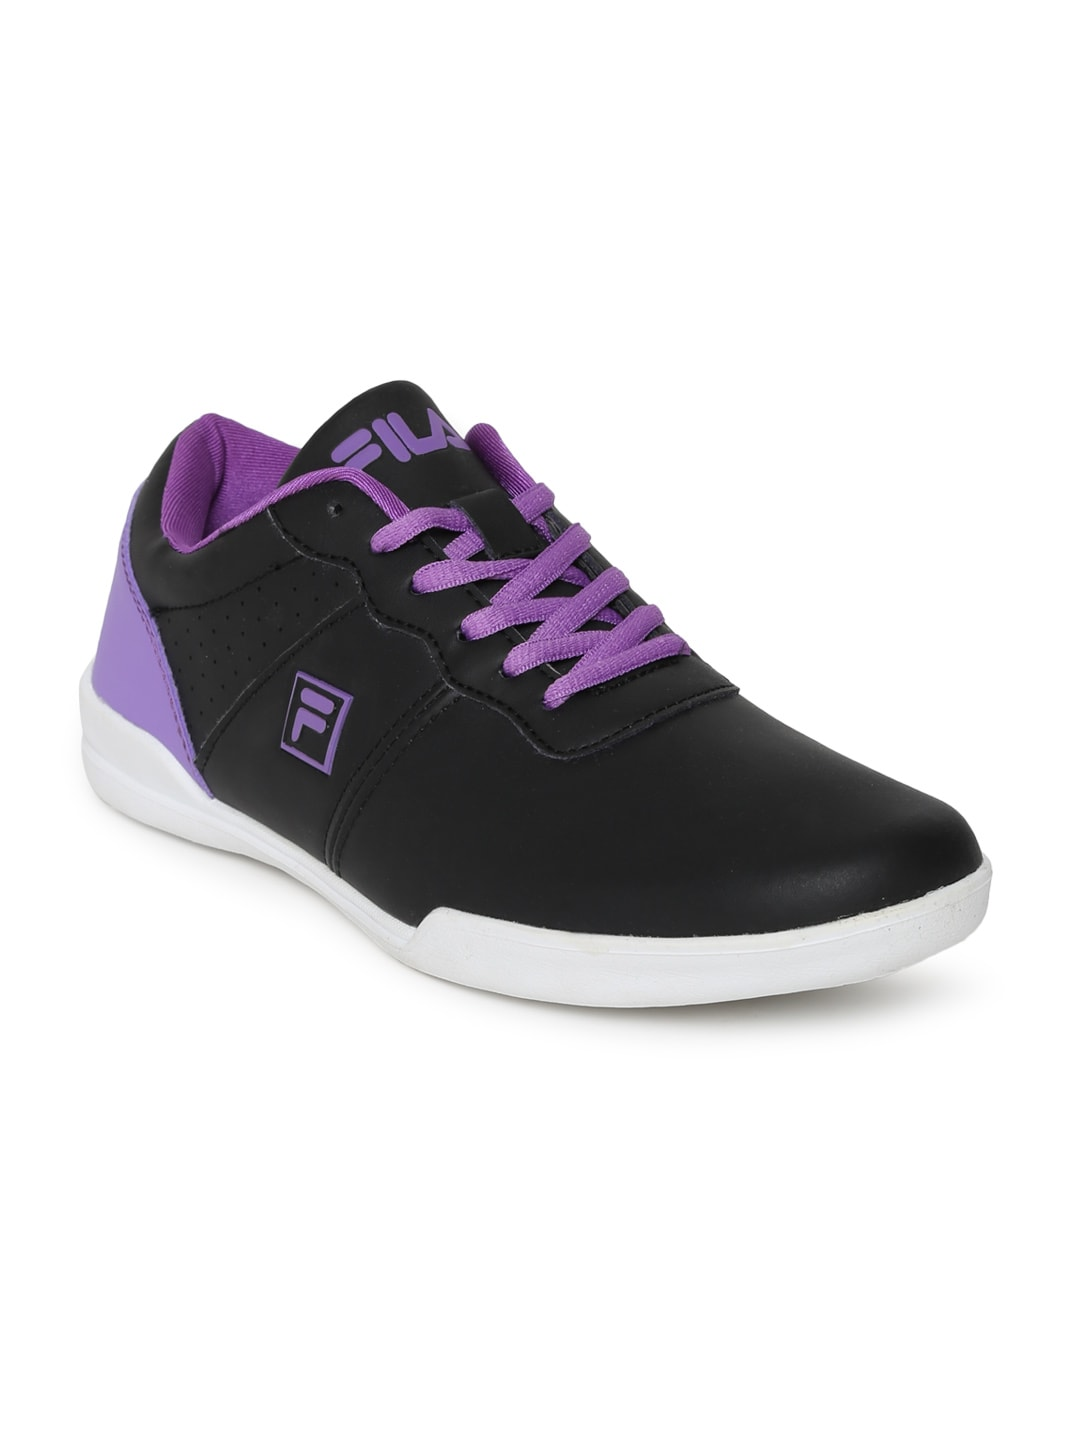 FILA Women Black KAOMI Sneakers image